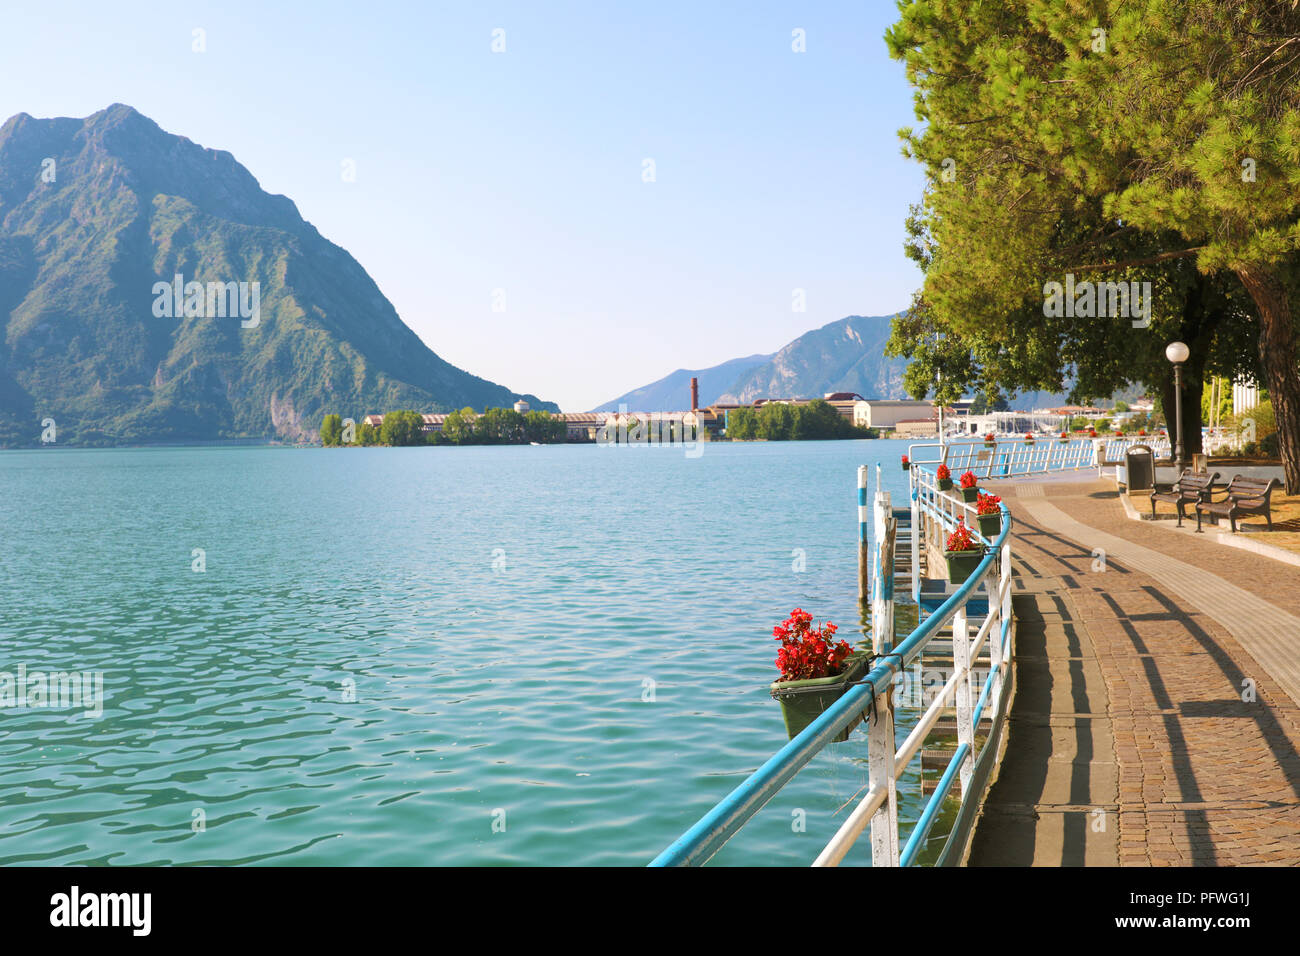 Beautiful mountain lake front at Lovere, Lake Iseo, Italy - Stock Image